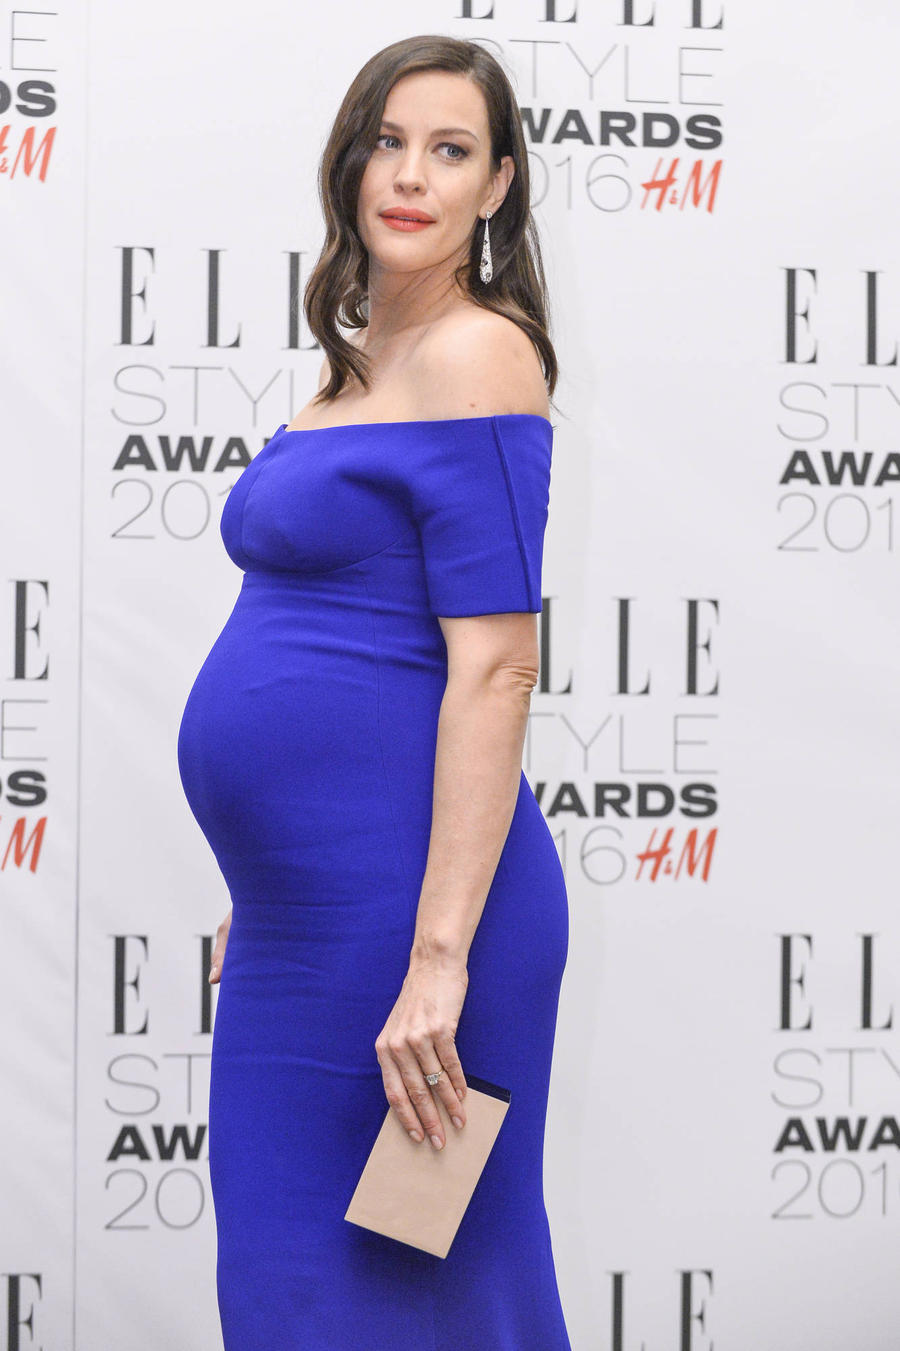 Liv Tyler: 'Breastfeeding Shouldn't Be Stigmatised'